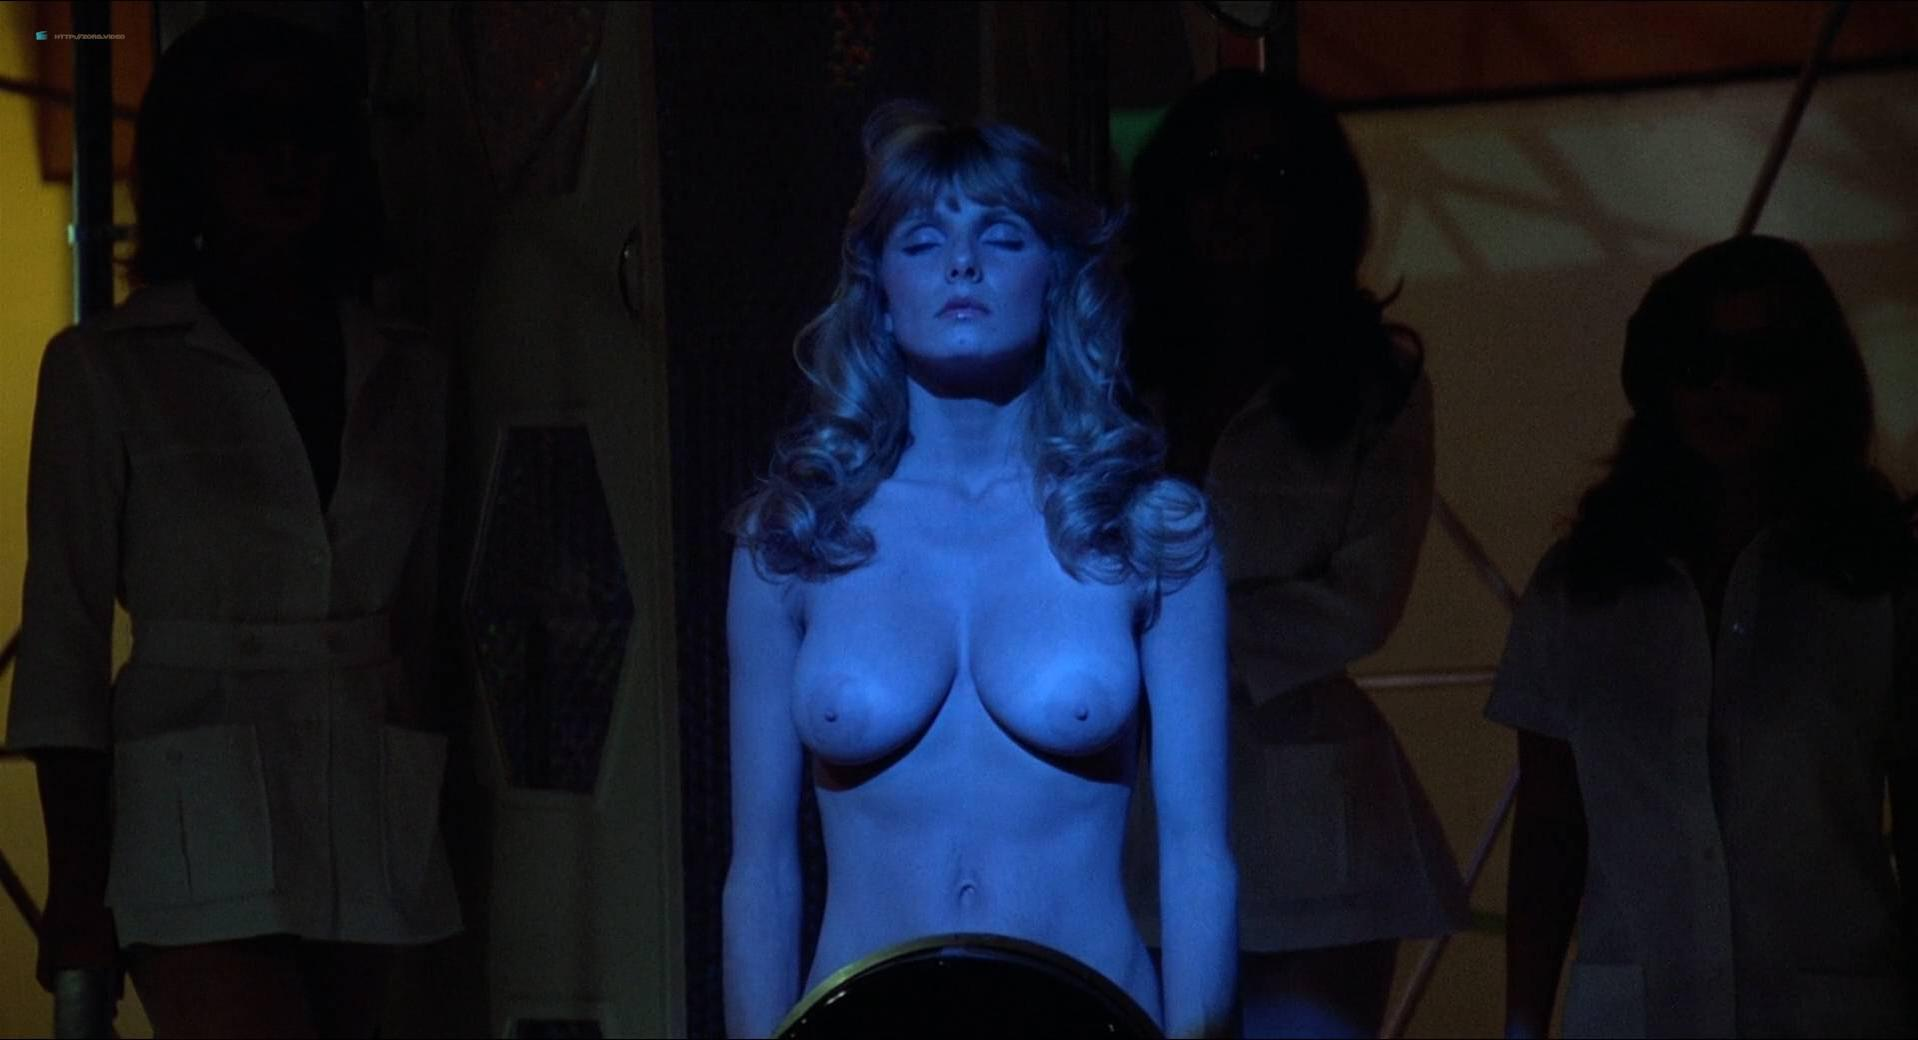 Victoria Vetri nude, Anitra Ford nude - Invasion of the Bee Girls (1973)